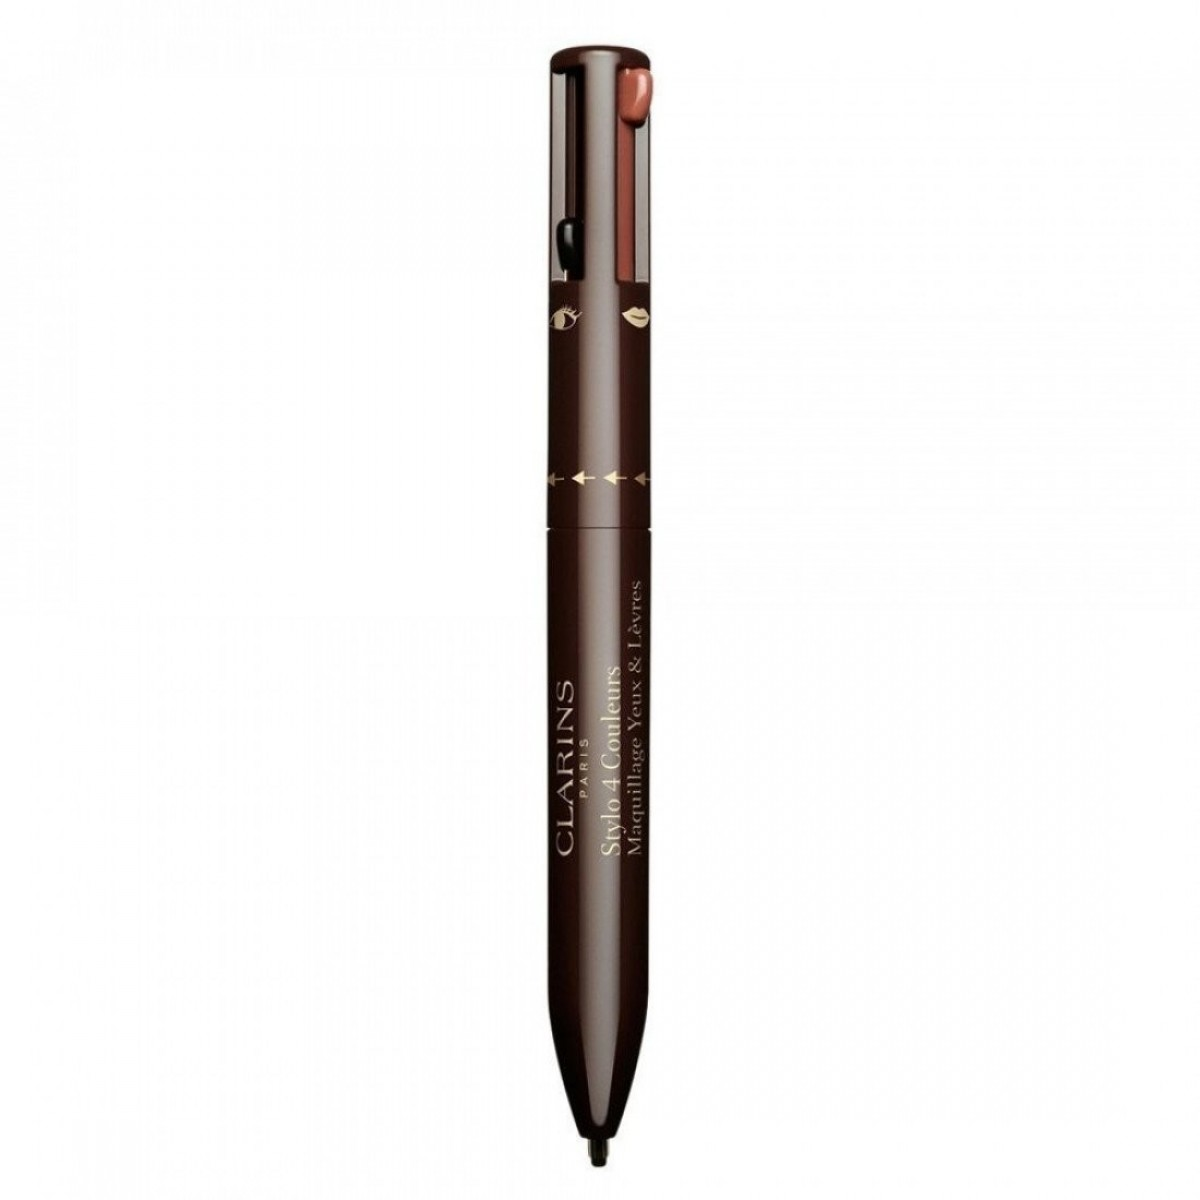 4-Colour All-in-One Eyes & Lips Pen